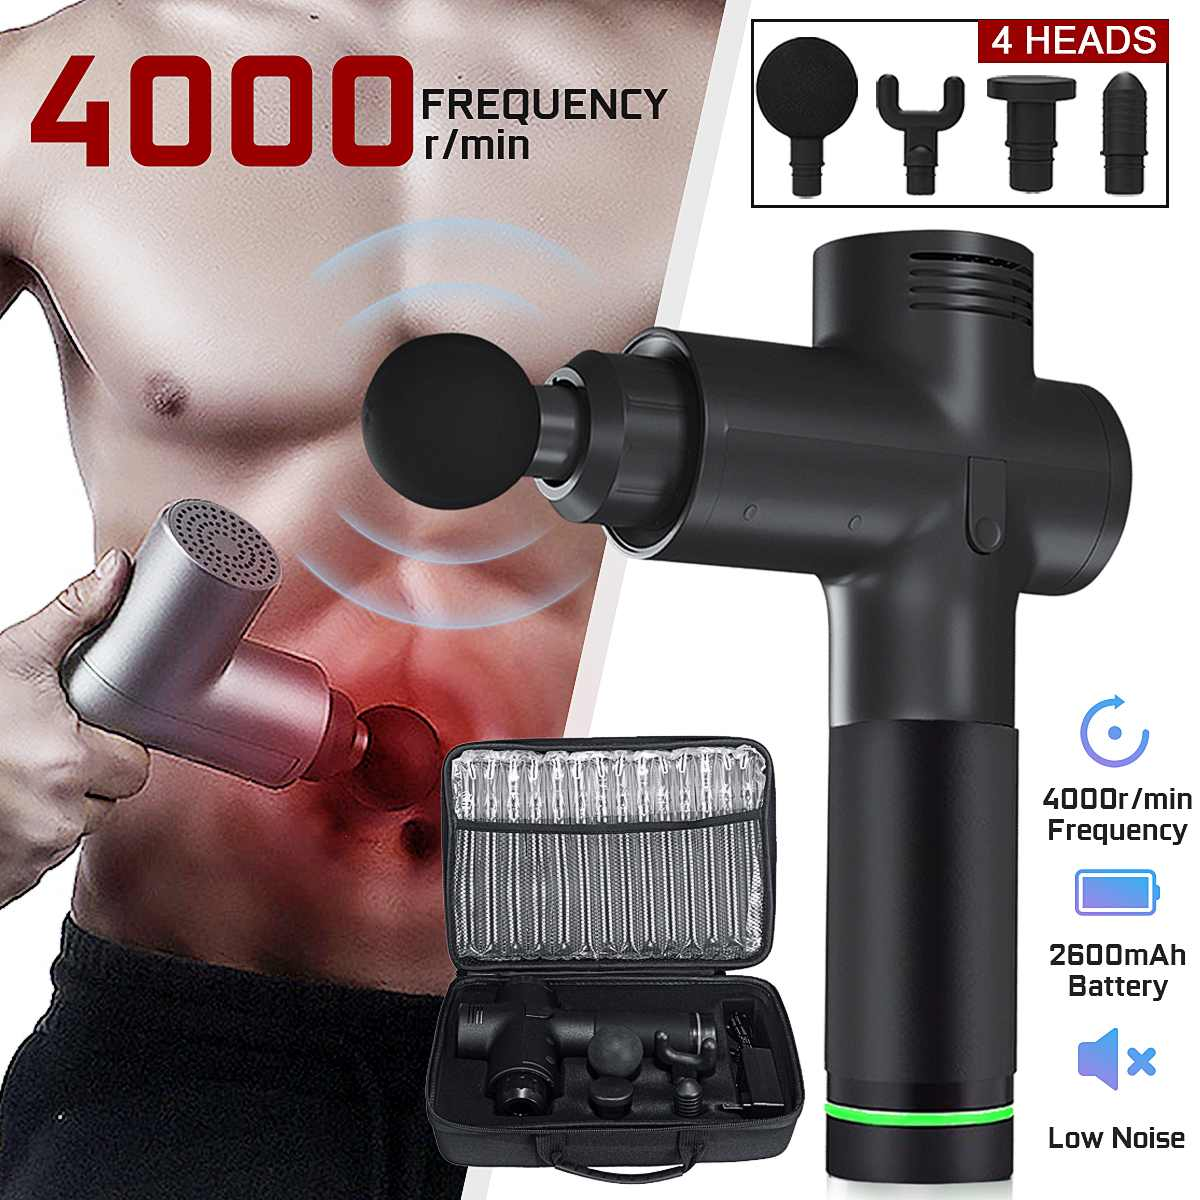 4000r/min Therapy Massage Guns 3 Gears Muscle Massager Pain Sport Massage Machine Relax Body Slimming Relief 4 Heads With Bag| |   - AliExpress